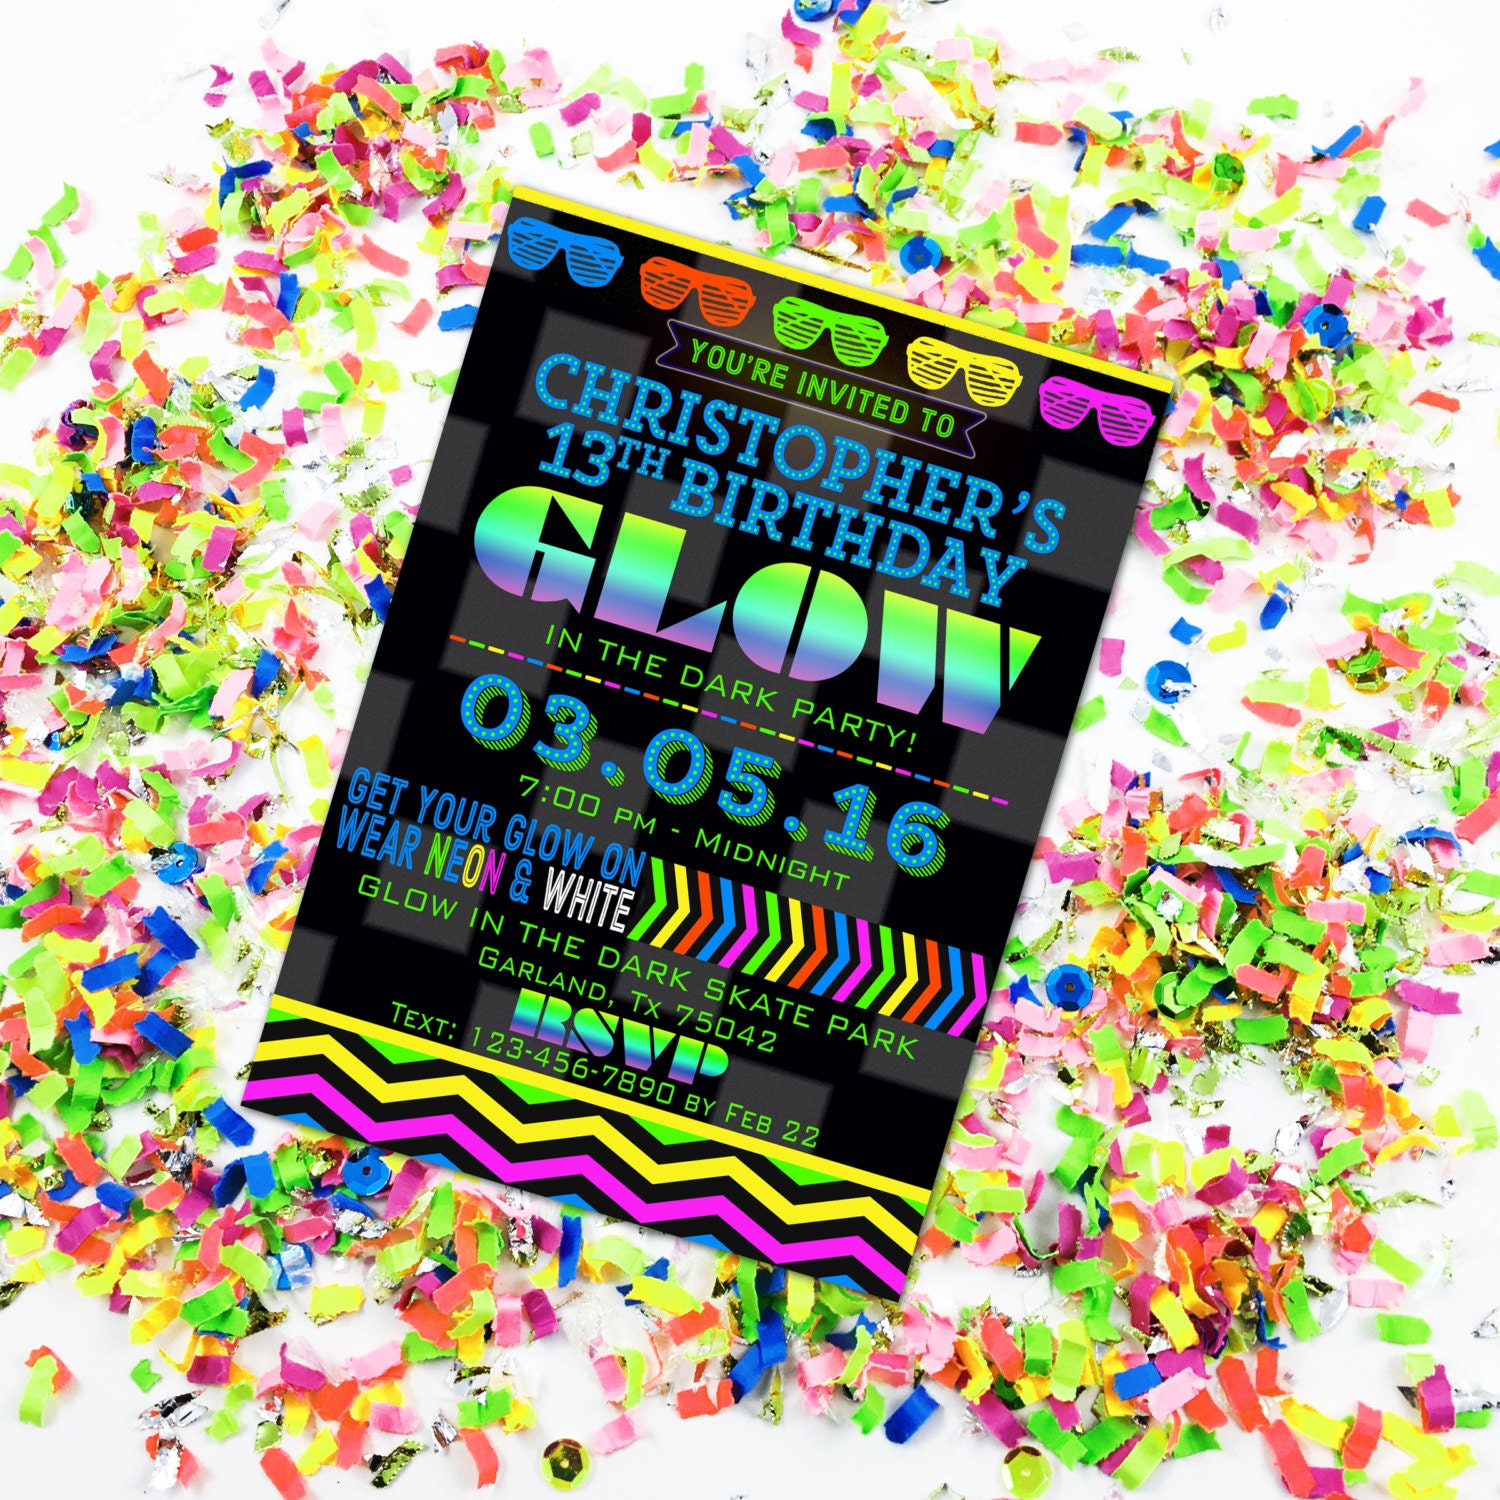 glow in the dark party invitation glow birthday neon party, invitation samples